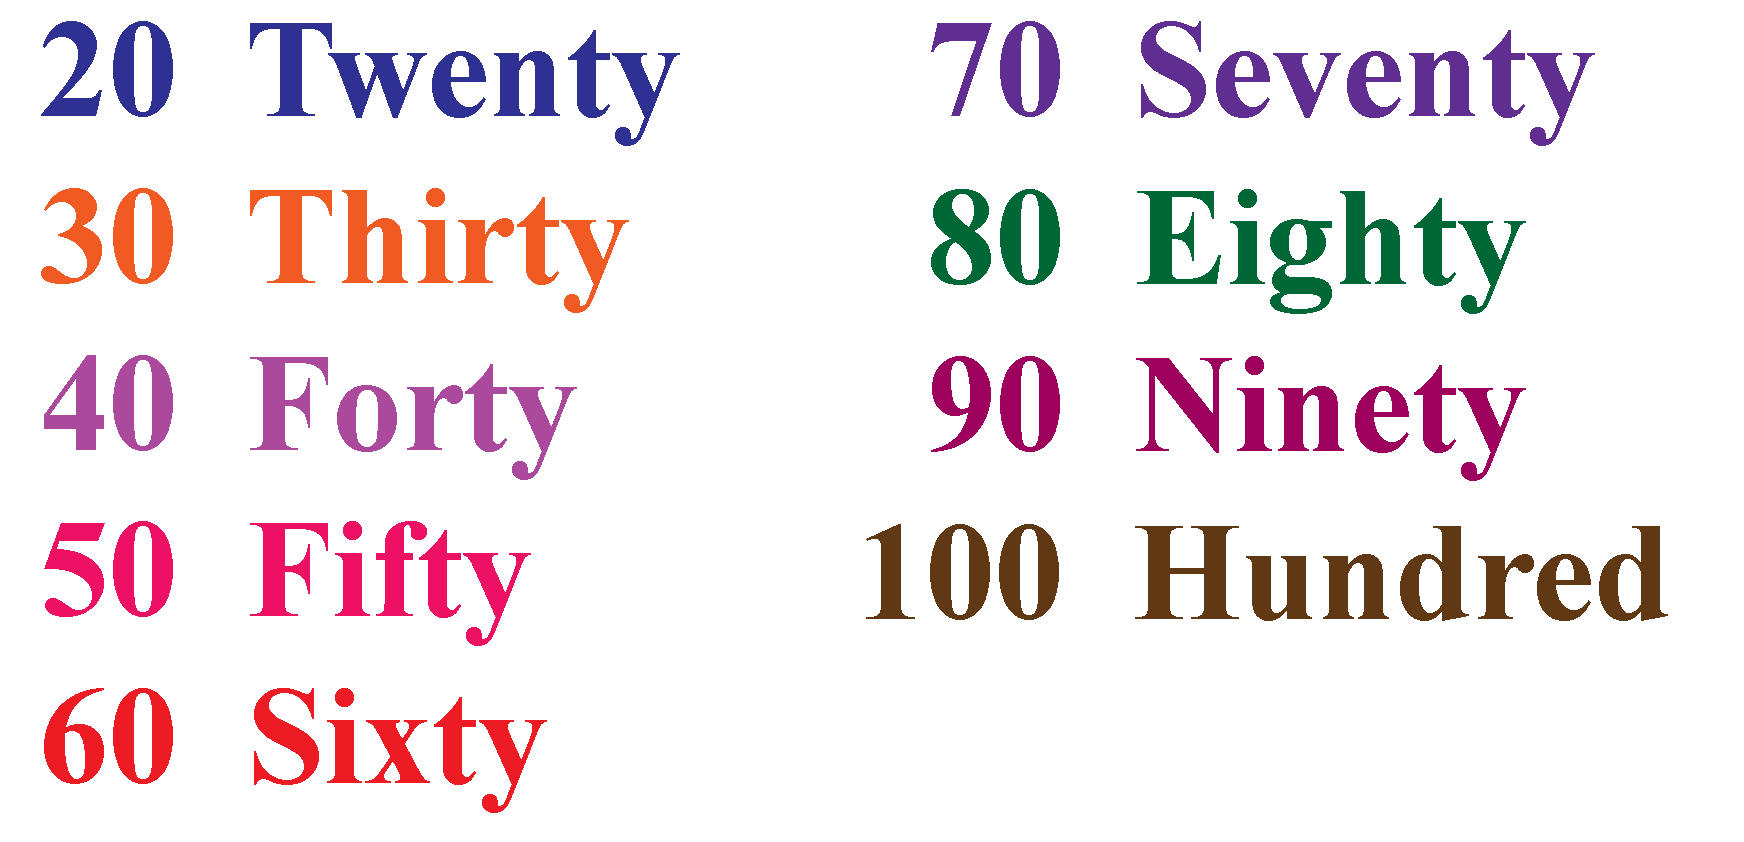 The numbers from 20 to 100 are written in numerals and words.